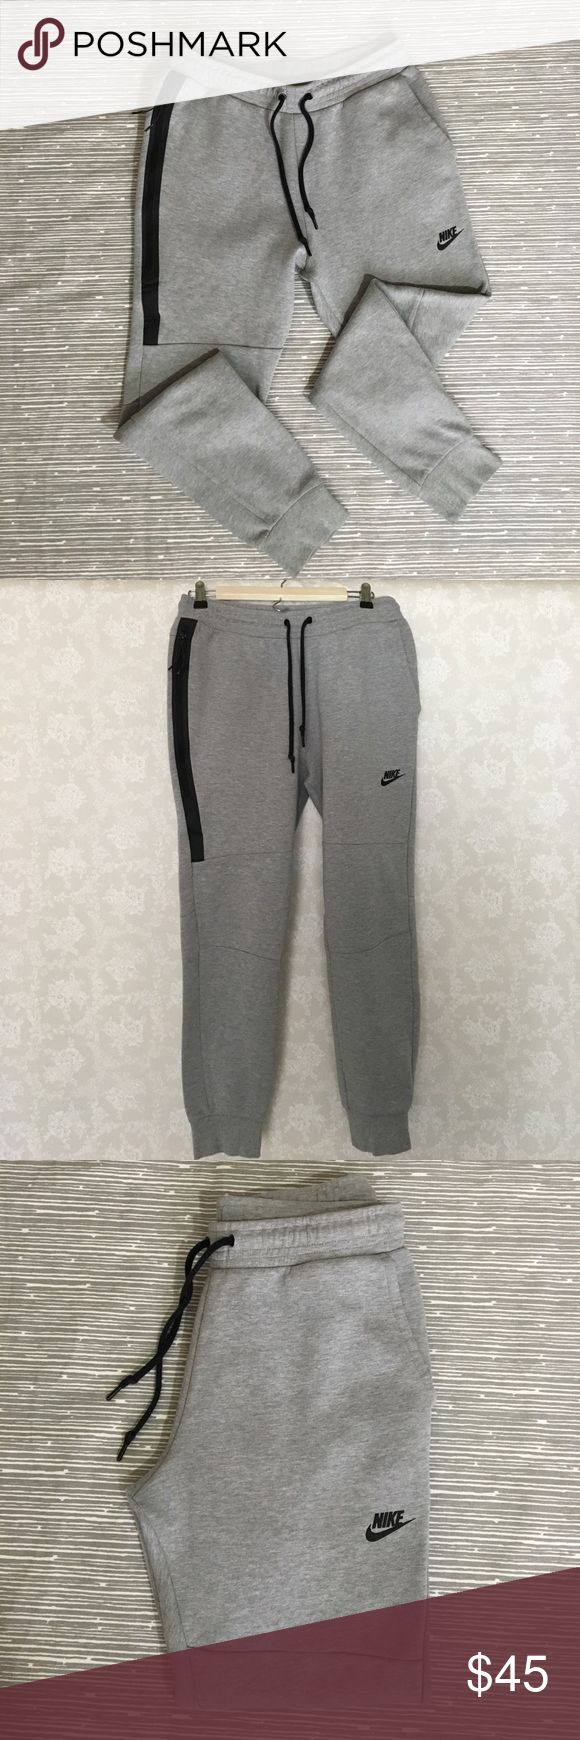 Nike Tech Fleece Joggers These tapered joggers are in great condition. They feature a zippered pocket on the left side to stash your belongings while your running or out and about. Nike Pants Sweatpants & Joggers